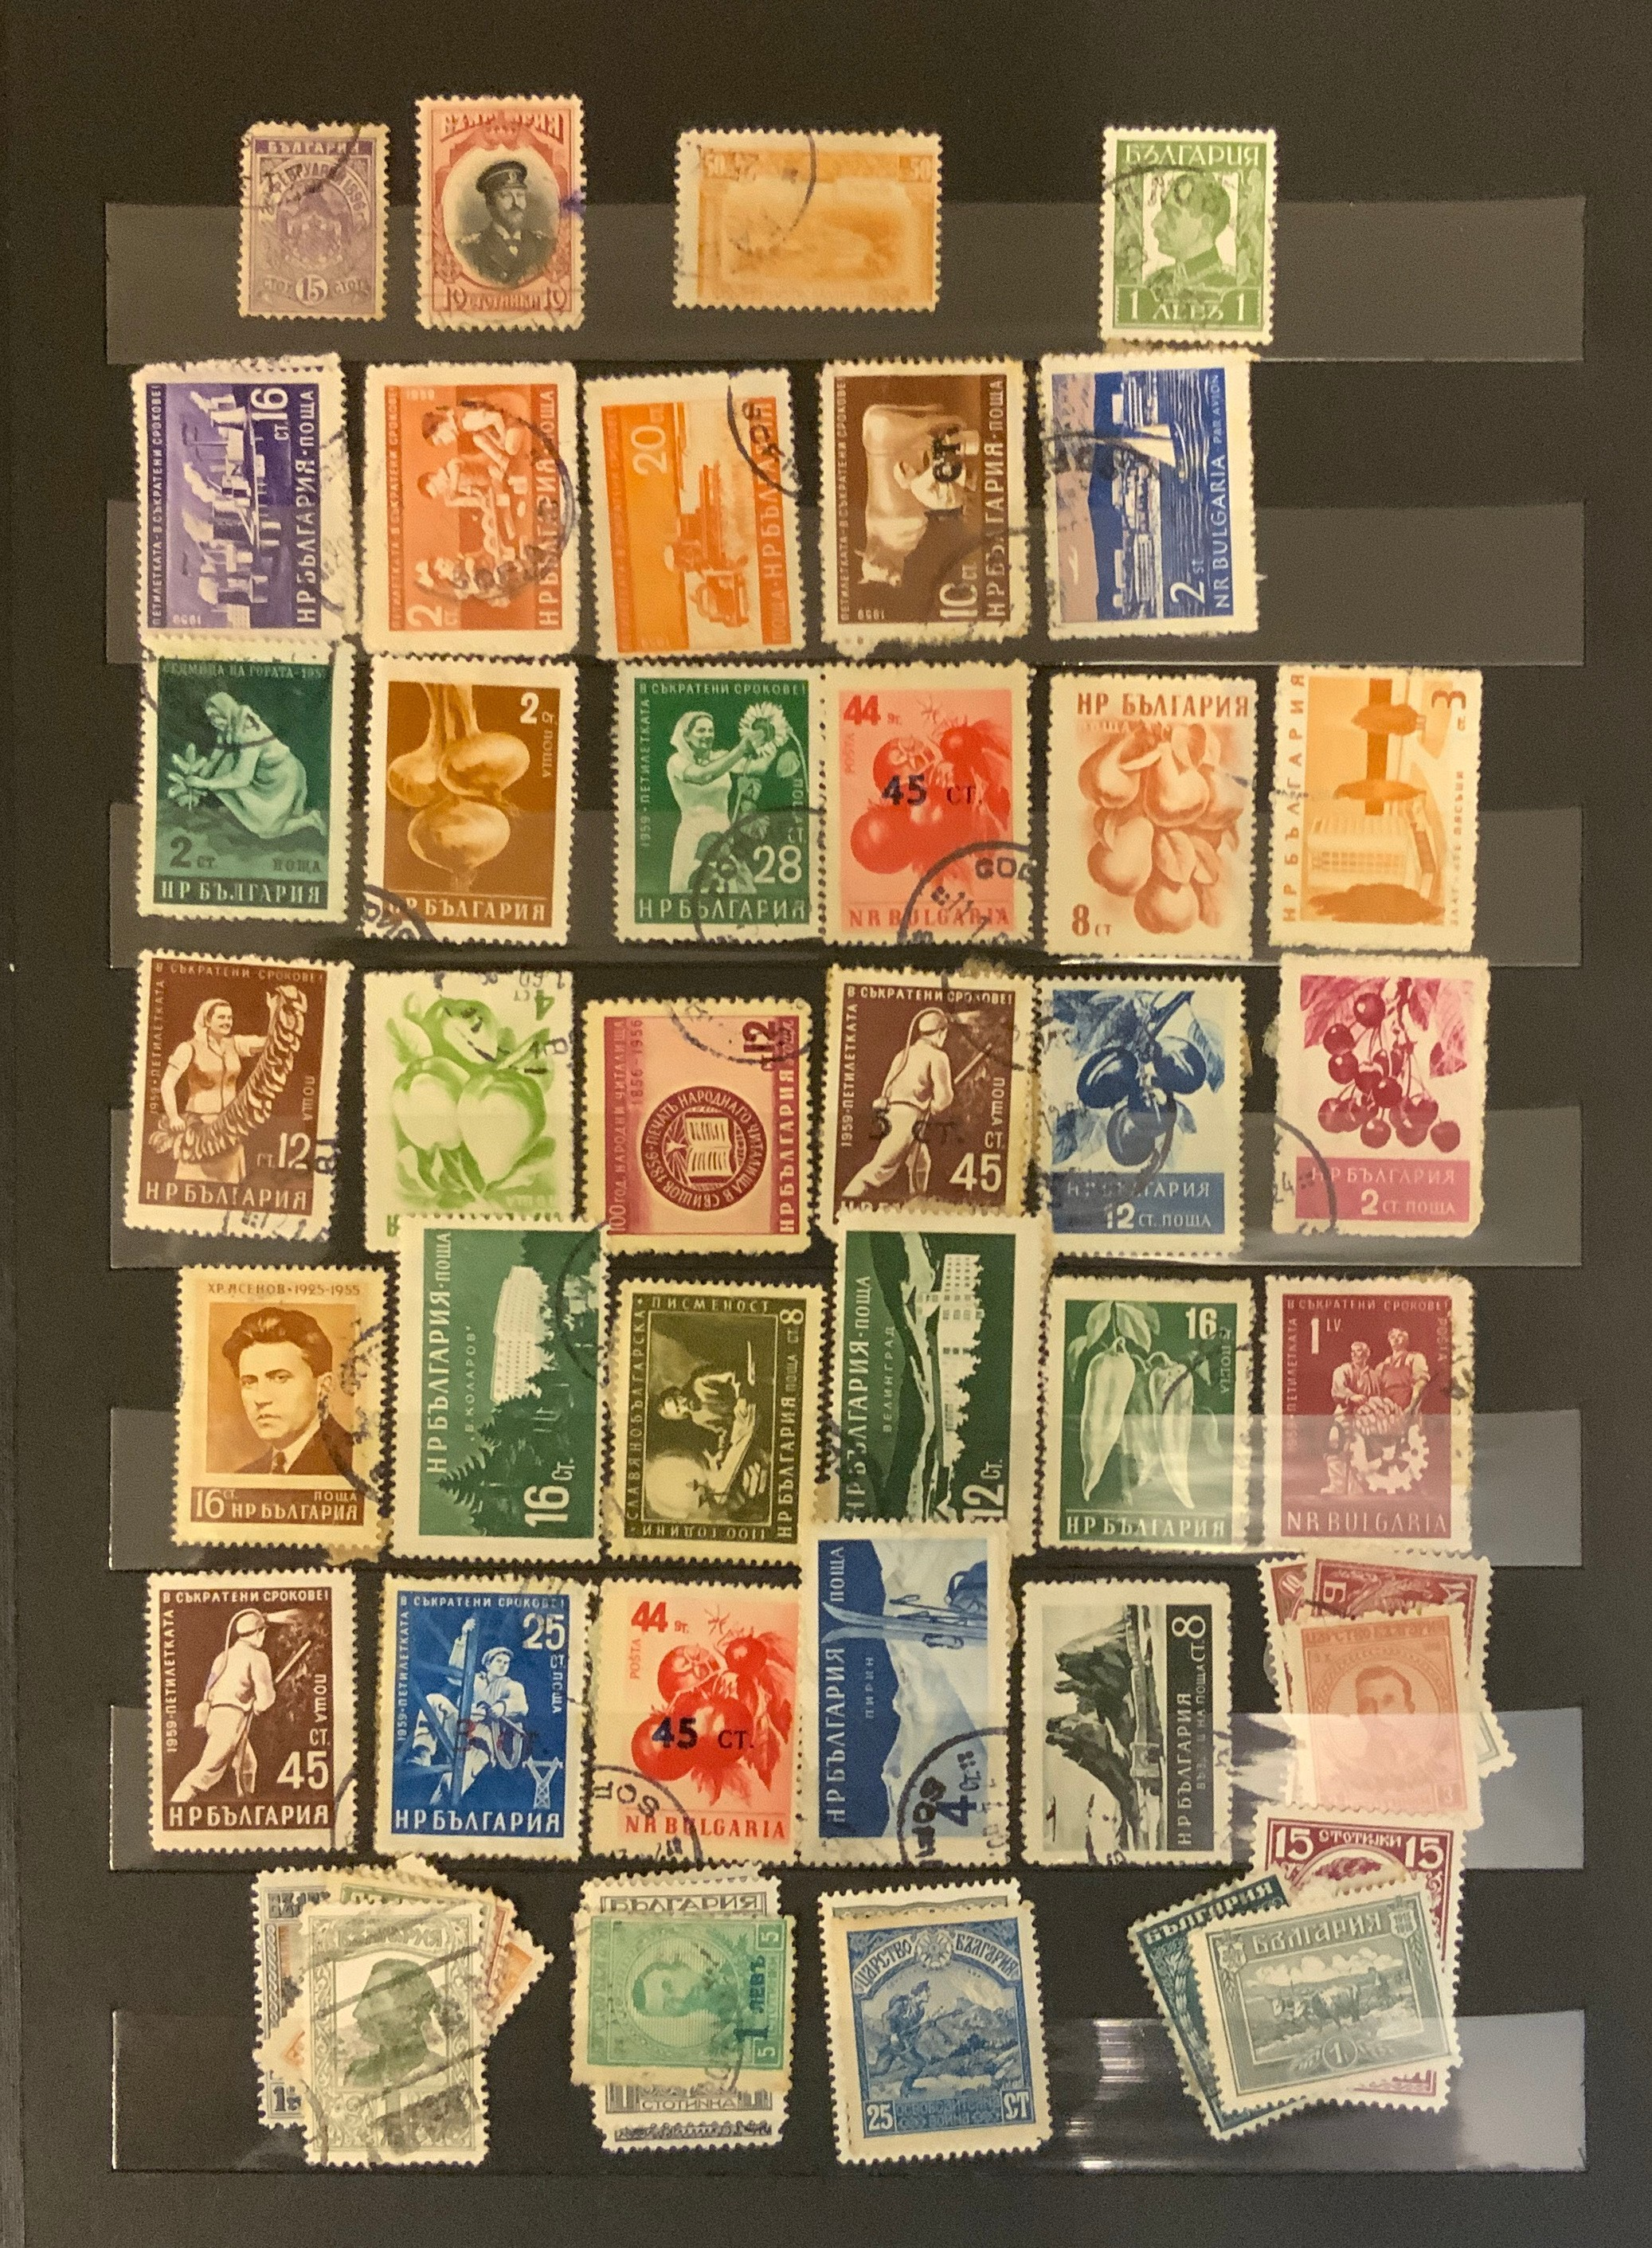 STOCKBOOK WITH STAMPS FROM VARIOUS COUNTRIES INCLUDING AUSTRIA, BELGIUM, FRANCE - Image 7 of 16